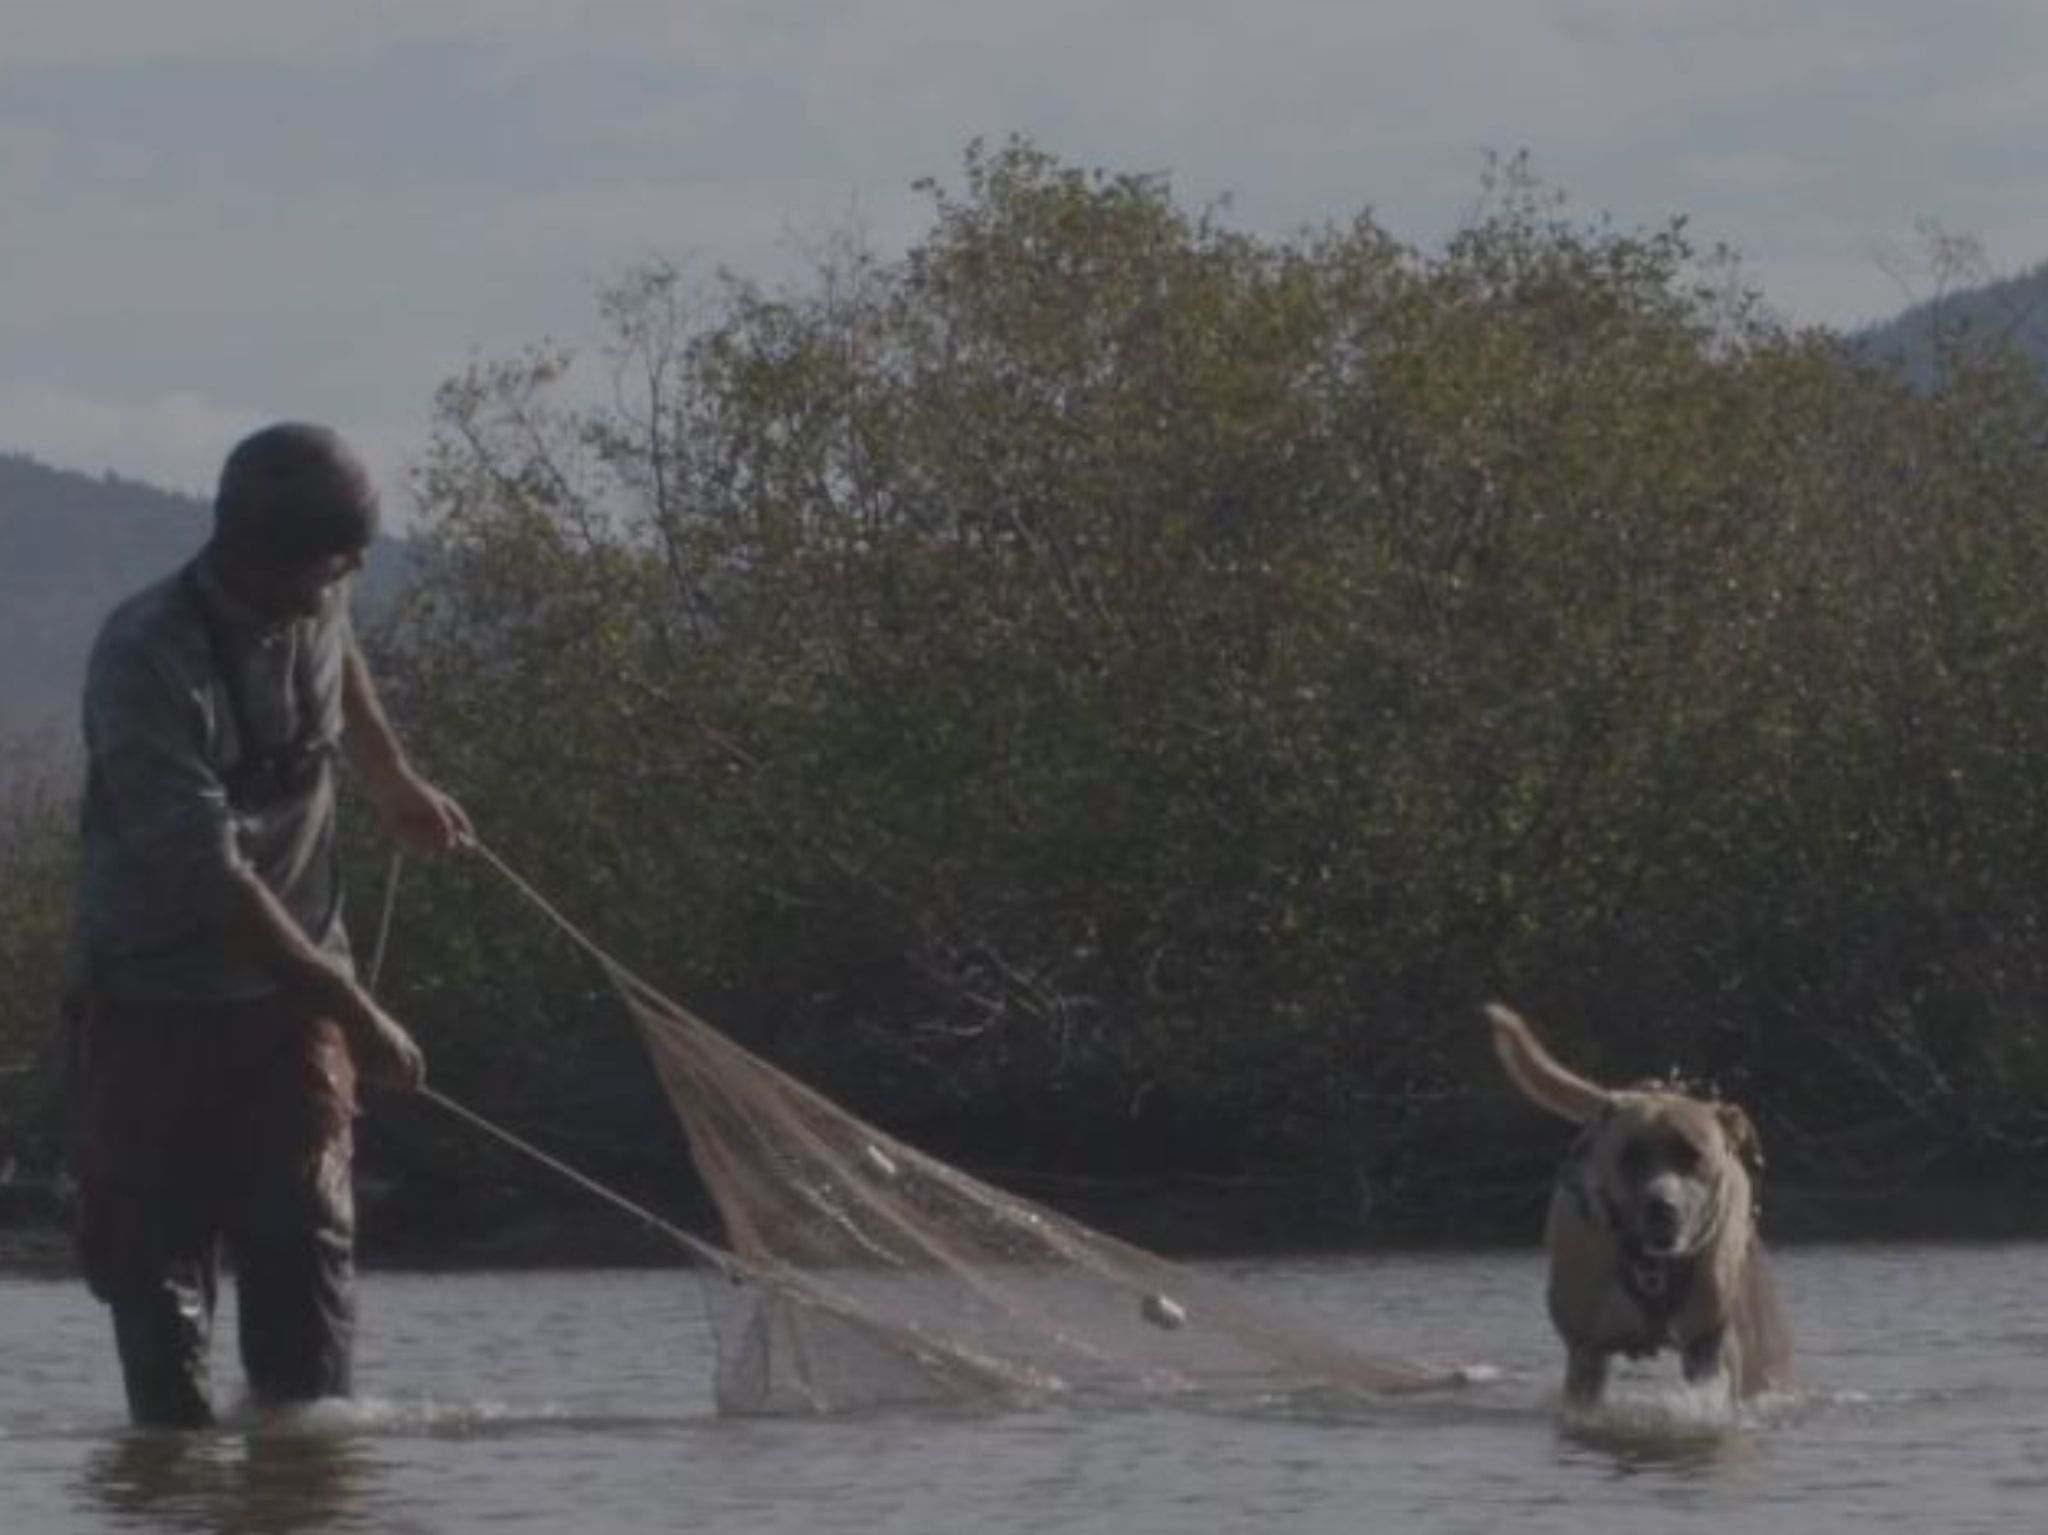 Dub Paetz and his dog Hank trying to catch fish in a seine net. This is from Called to the Wild. [Photo of the day - August 2021]